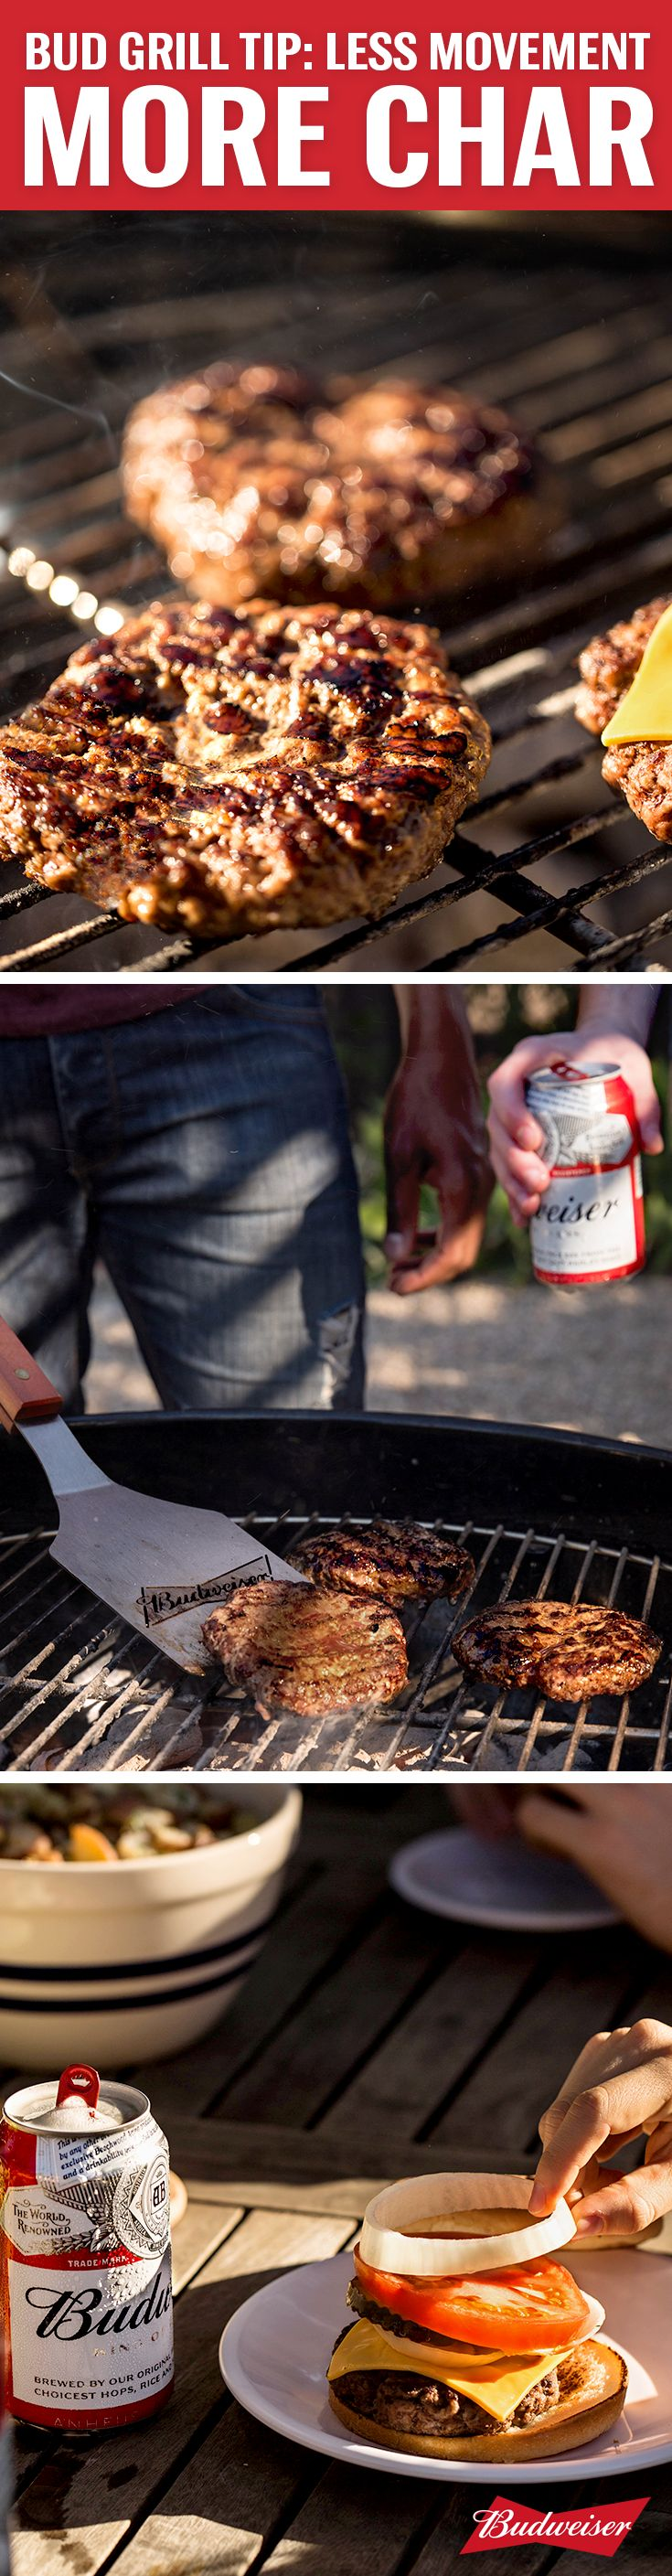 Bud grill tip: an easy lesson on grilling like a pro, don't move the burger patty until you're ready to take it off. Less movement = more consistent heat = a better char on the meat. And don't forget the Budweiser. Its crisp finish brings out the charred flavor. If your mouth is watering, we totally understand.